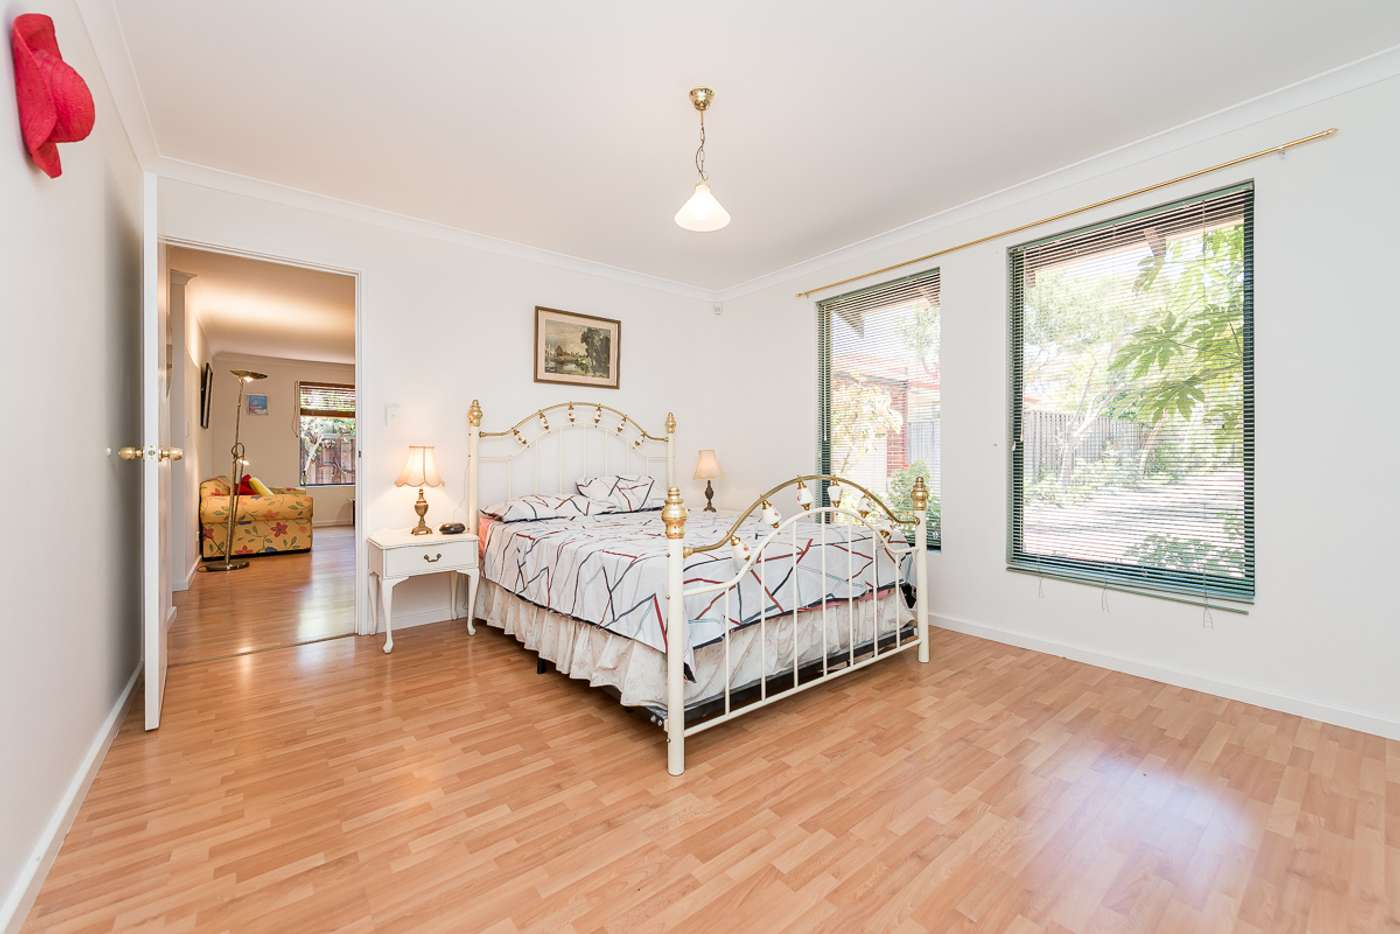 Sixth view of Homely house listing, 1 Chobham Way, Morley WA 6062